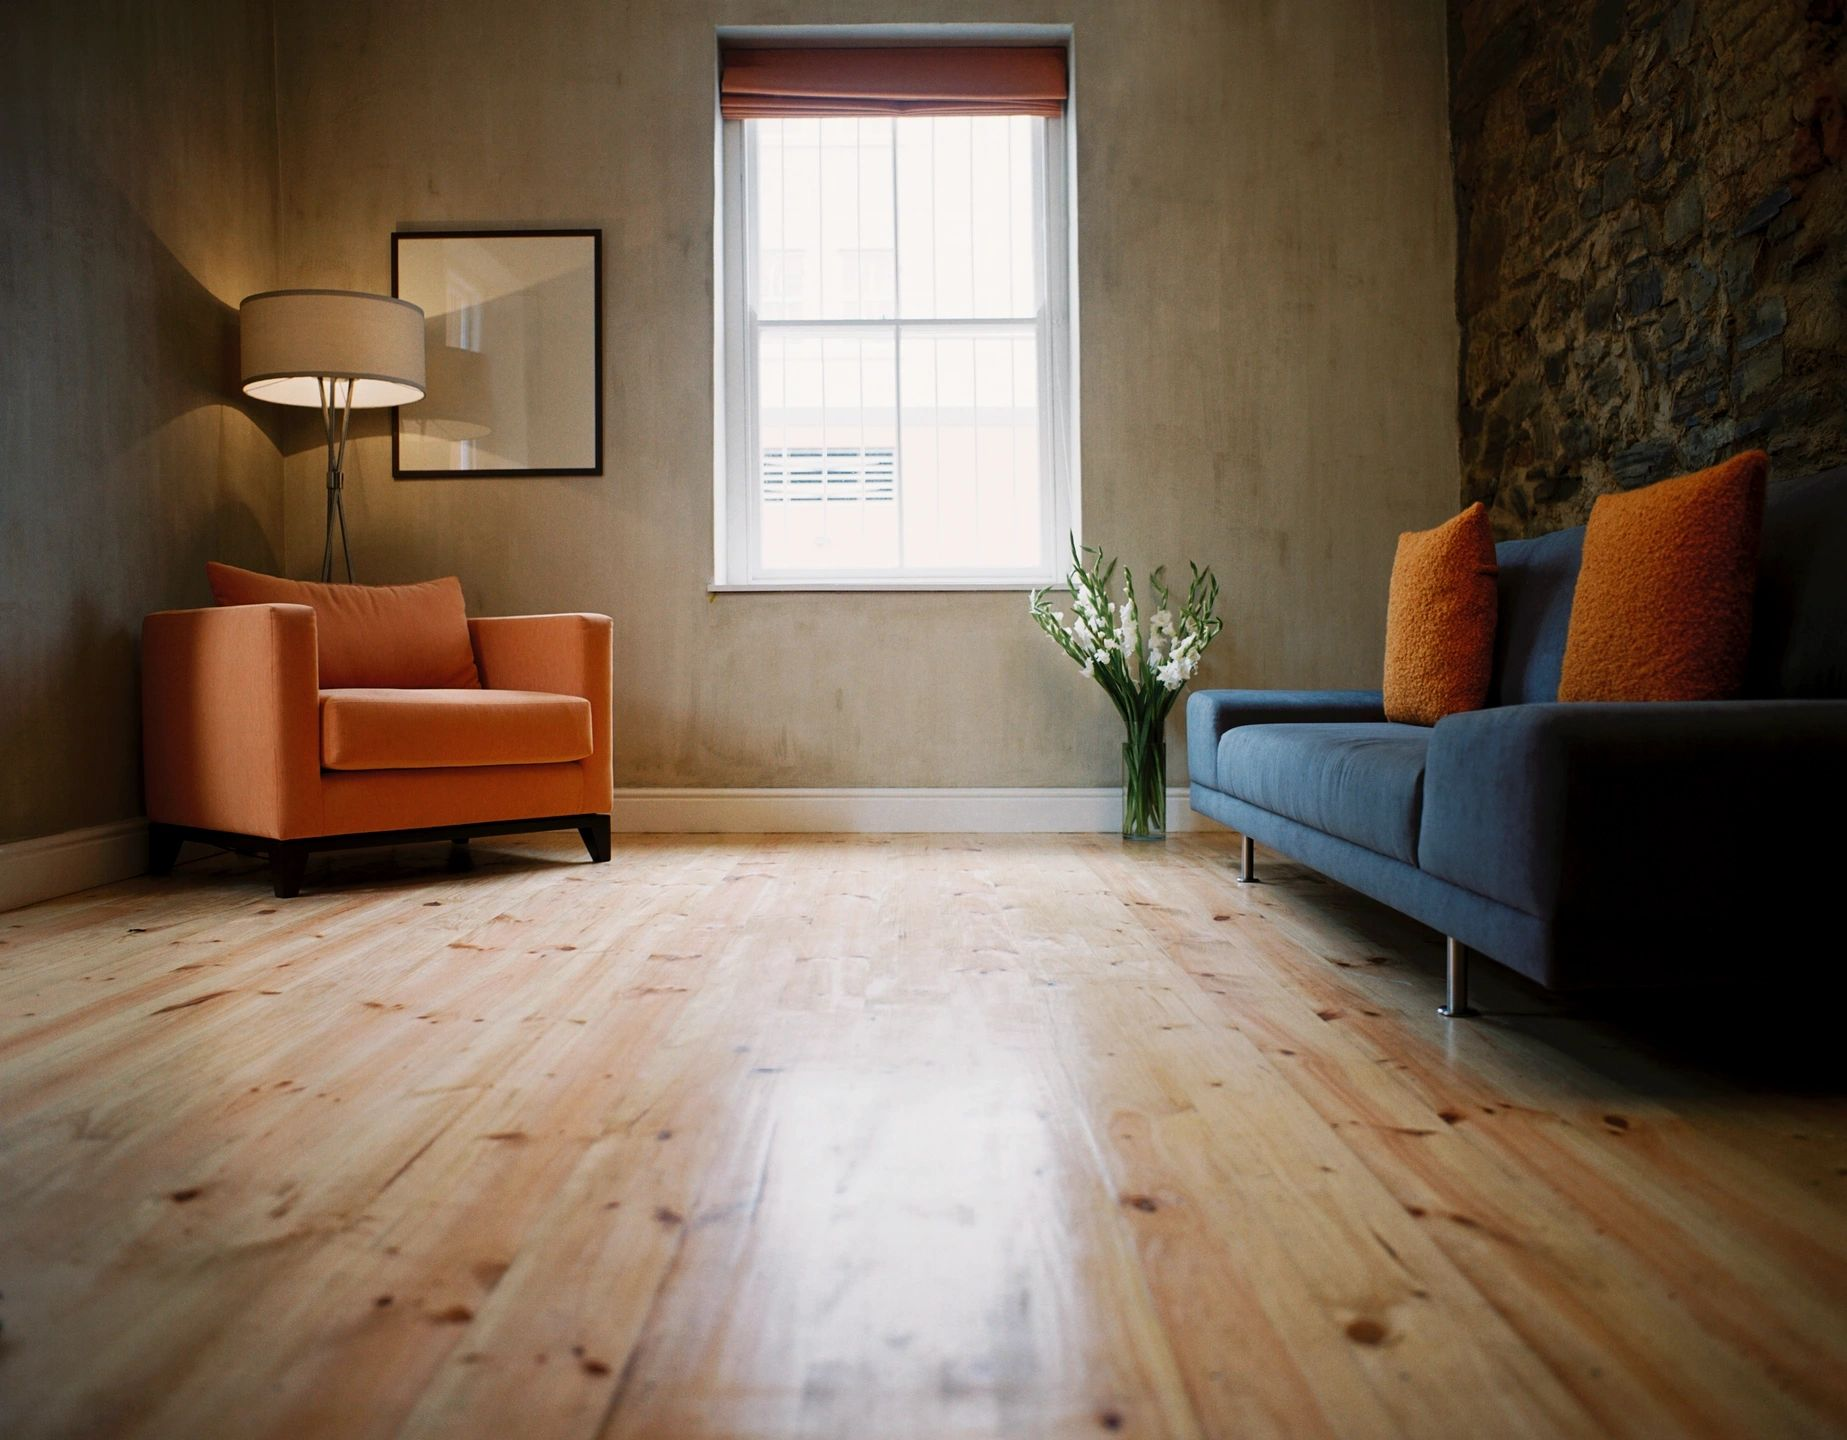 For aesthetically appealing floors, Global Clean services in the Toronto and Greater Toronto Area. For instance, we provide floor stripping, floor waxing and floor buffing services.